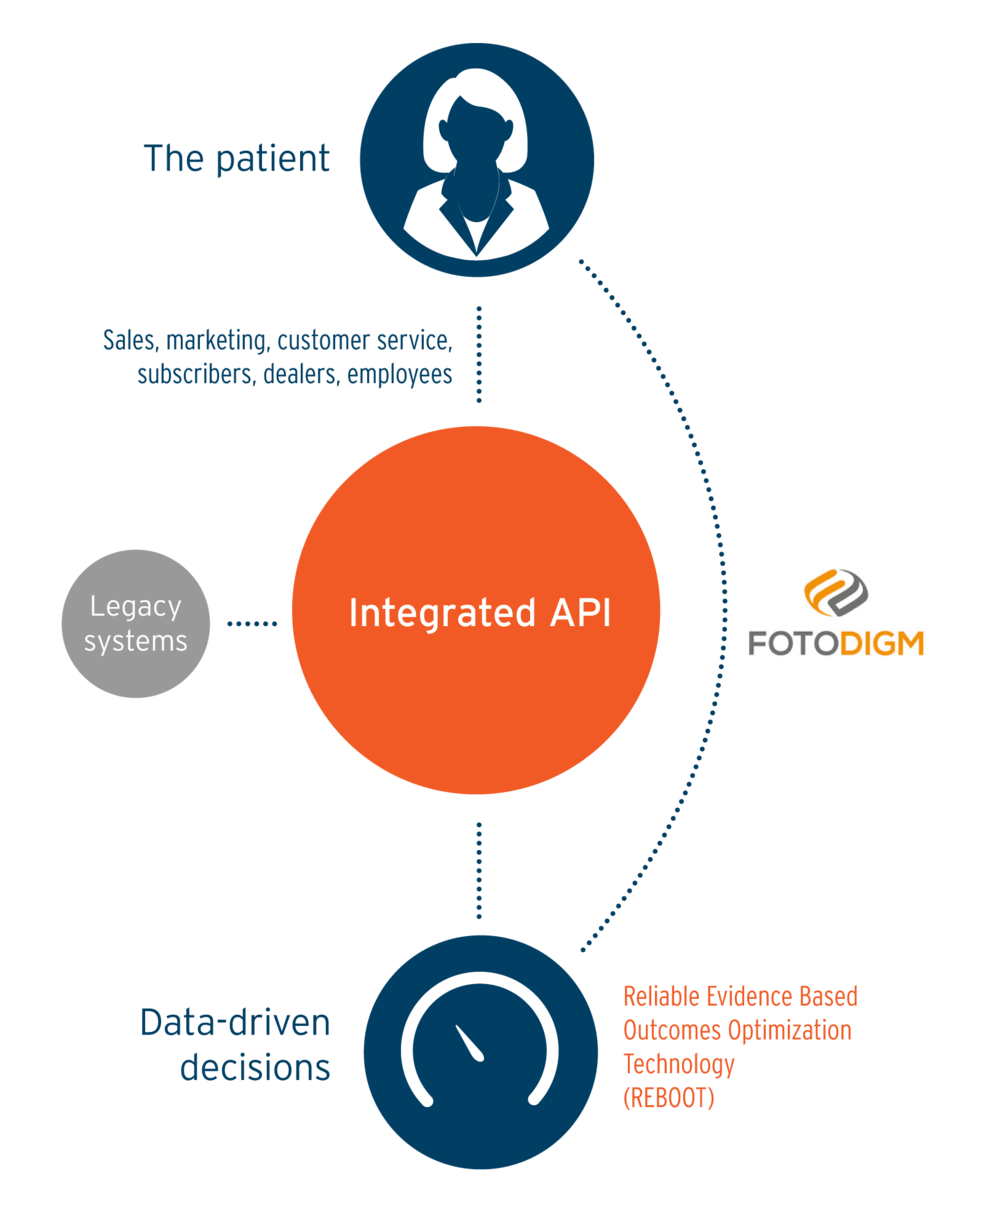 Parallax Care and FotoDigm works with legacy systems for Reliable Evidence Based Outcomes Optimized Technology (REBOOT). This decisions to be made from patient data optimizing patient outcomes.